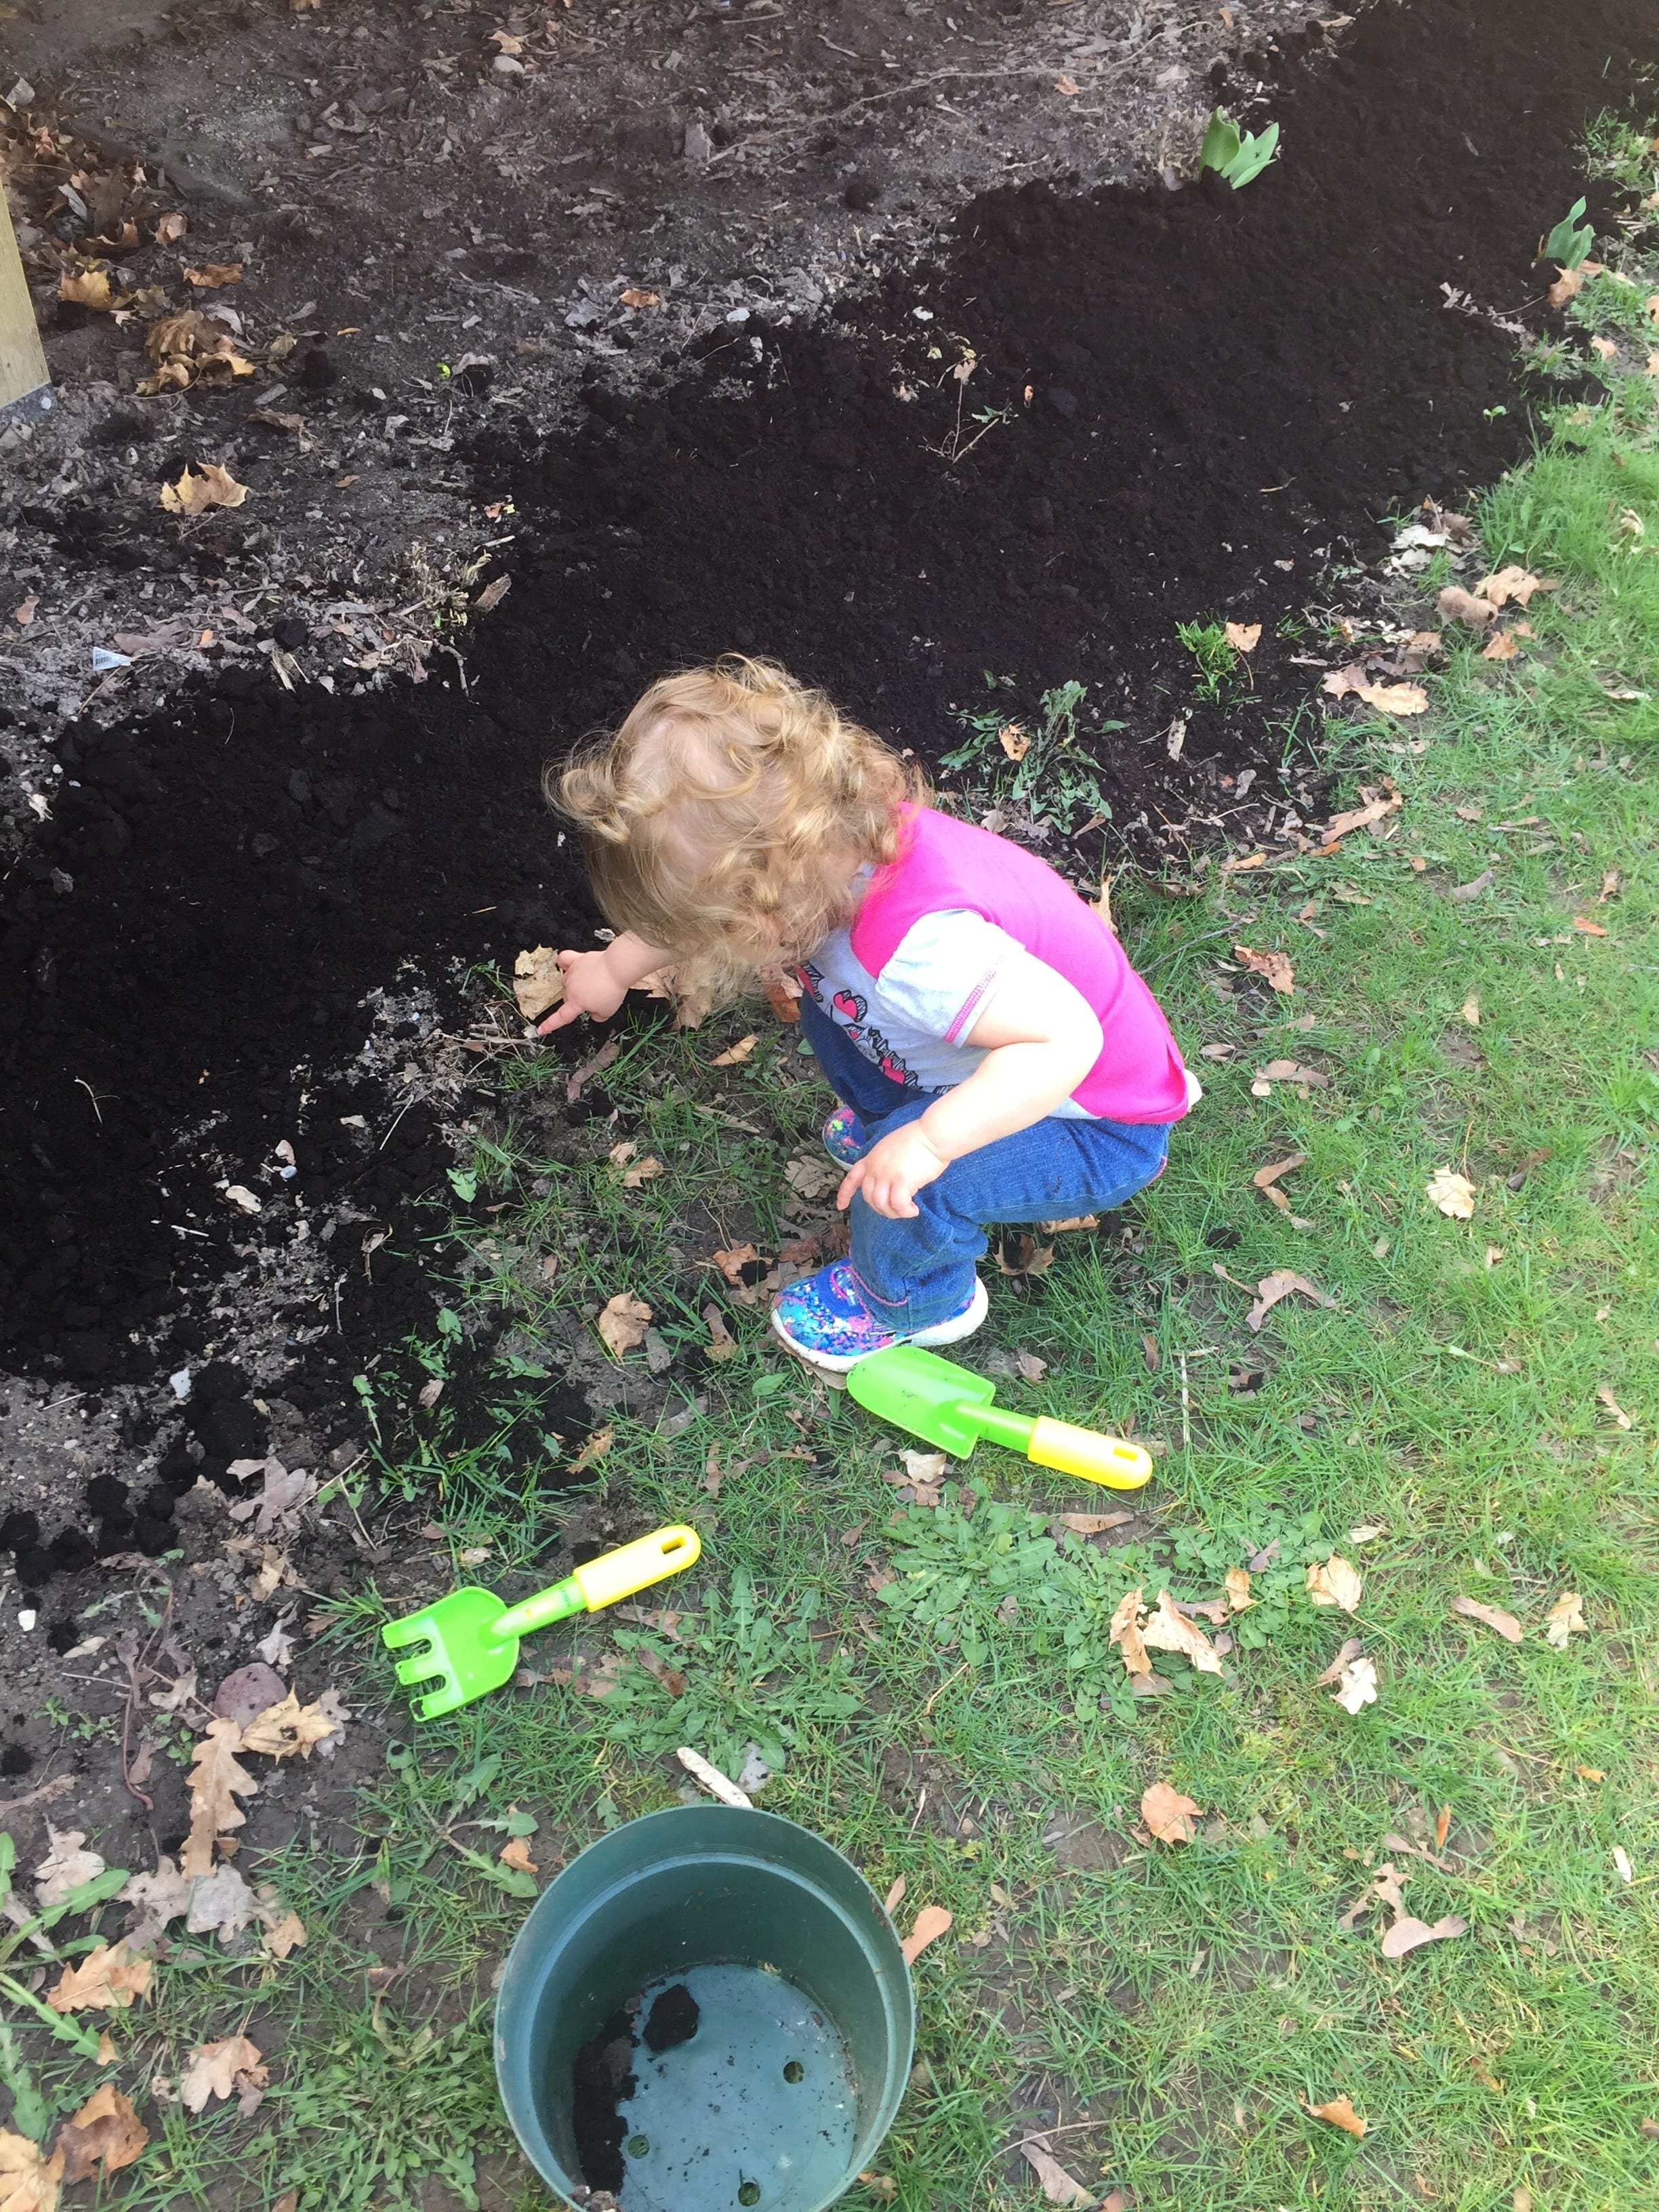 Toddler in jeans and a pink shirt playing in fresh dirt